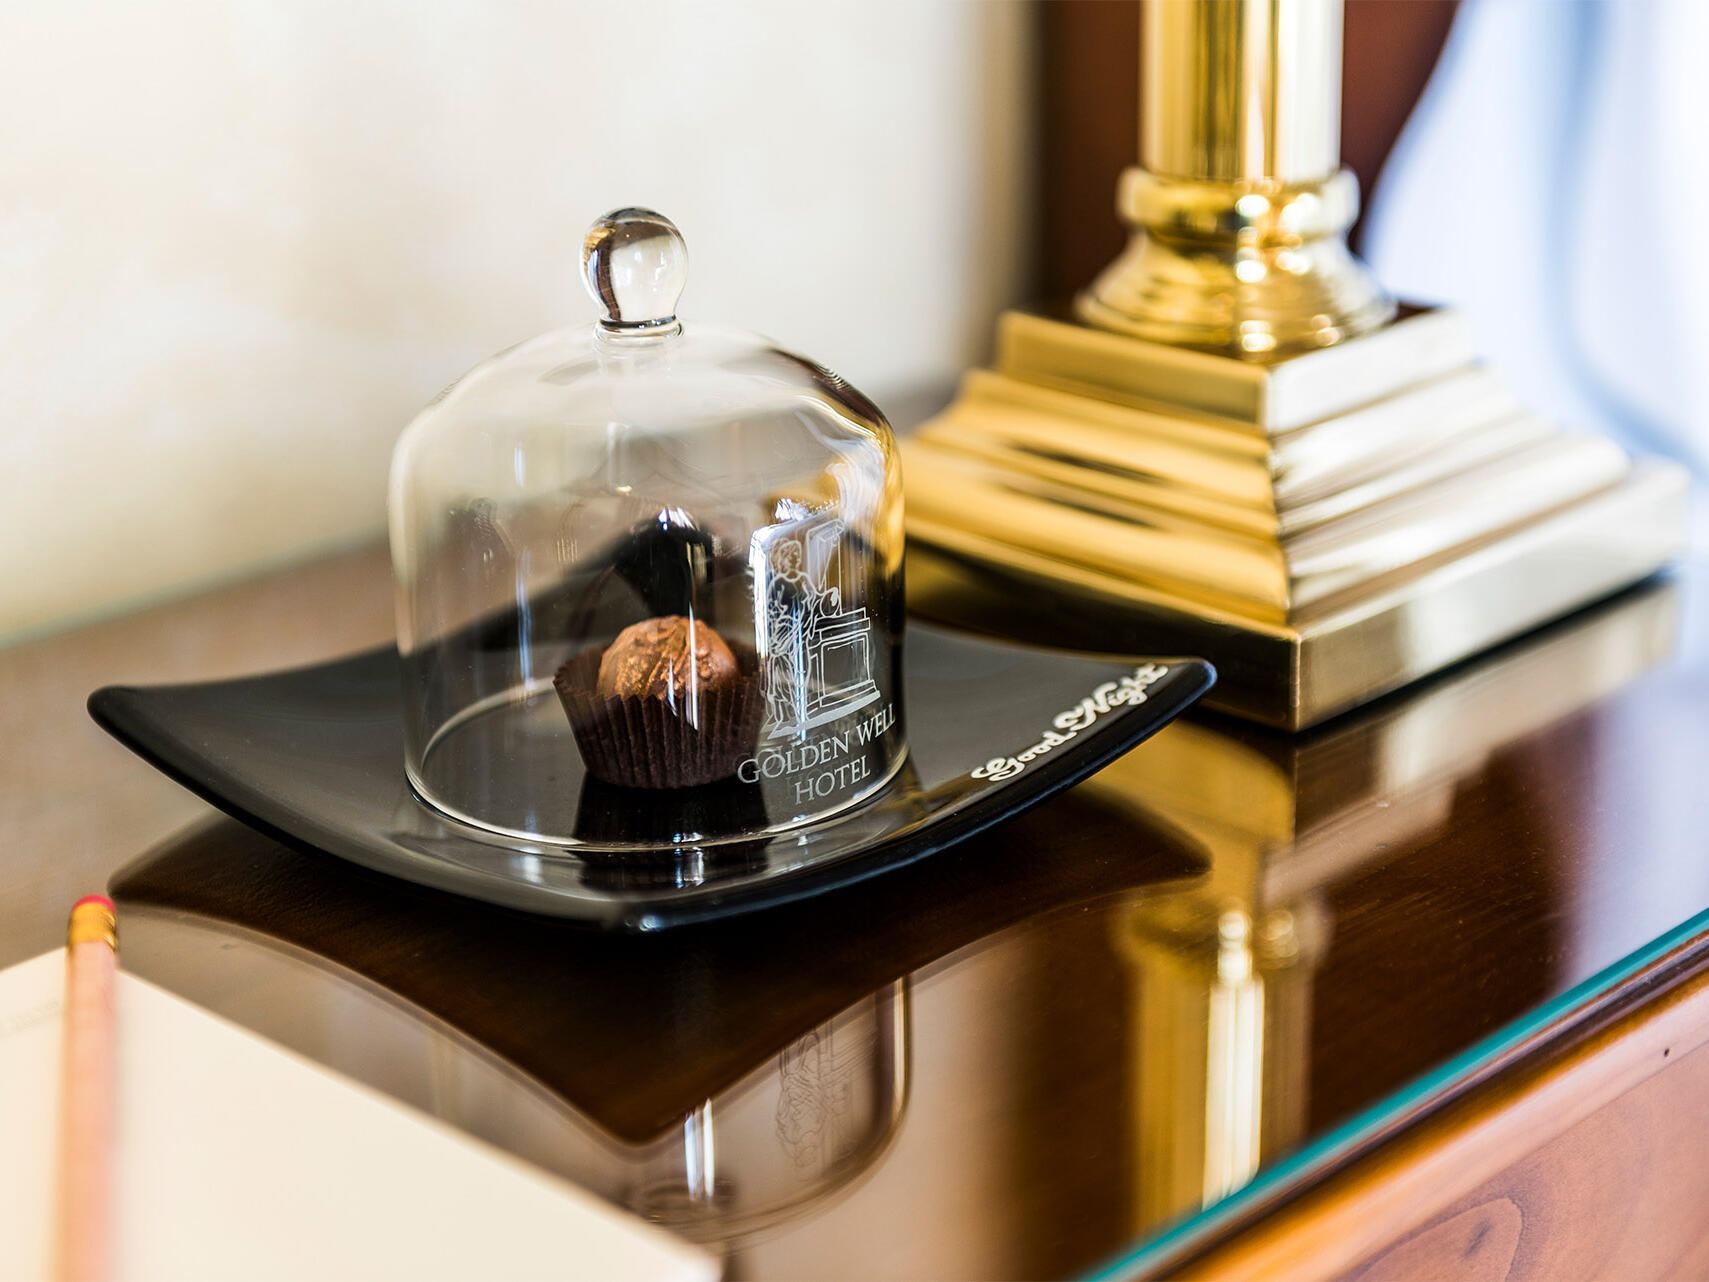 Personalized services at Golden Well Hotel in Prague